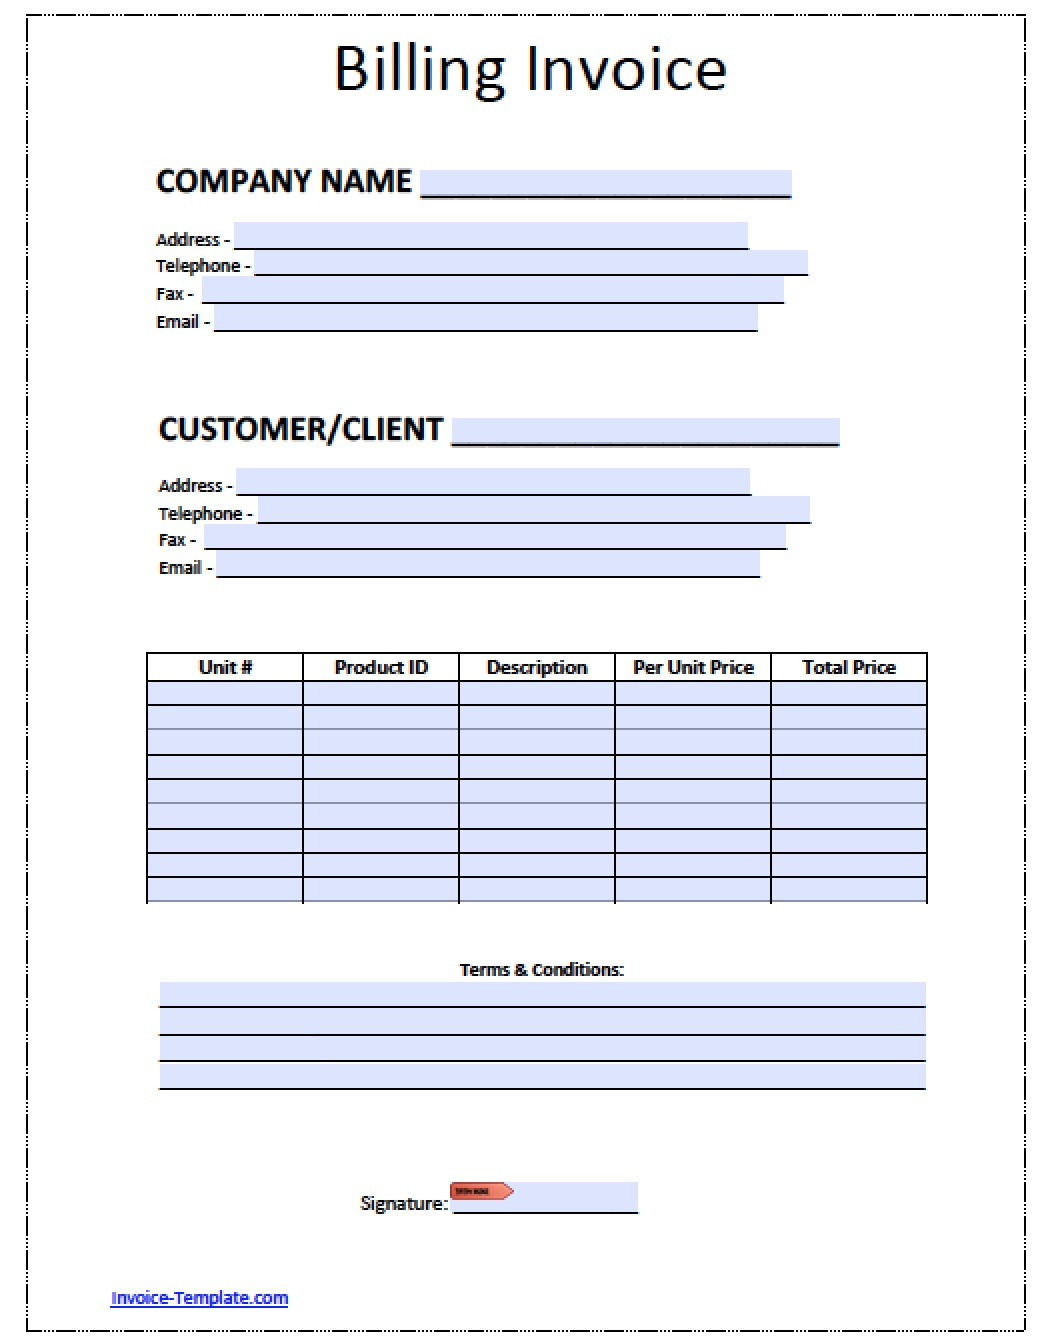 Format Of Invoice Bill Filename – know belize